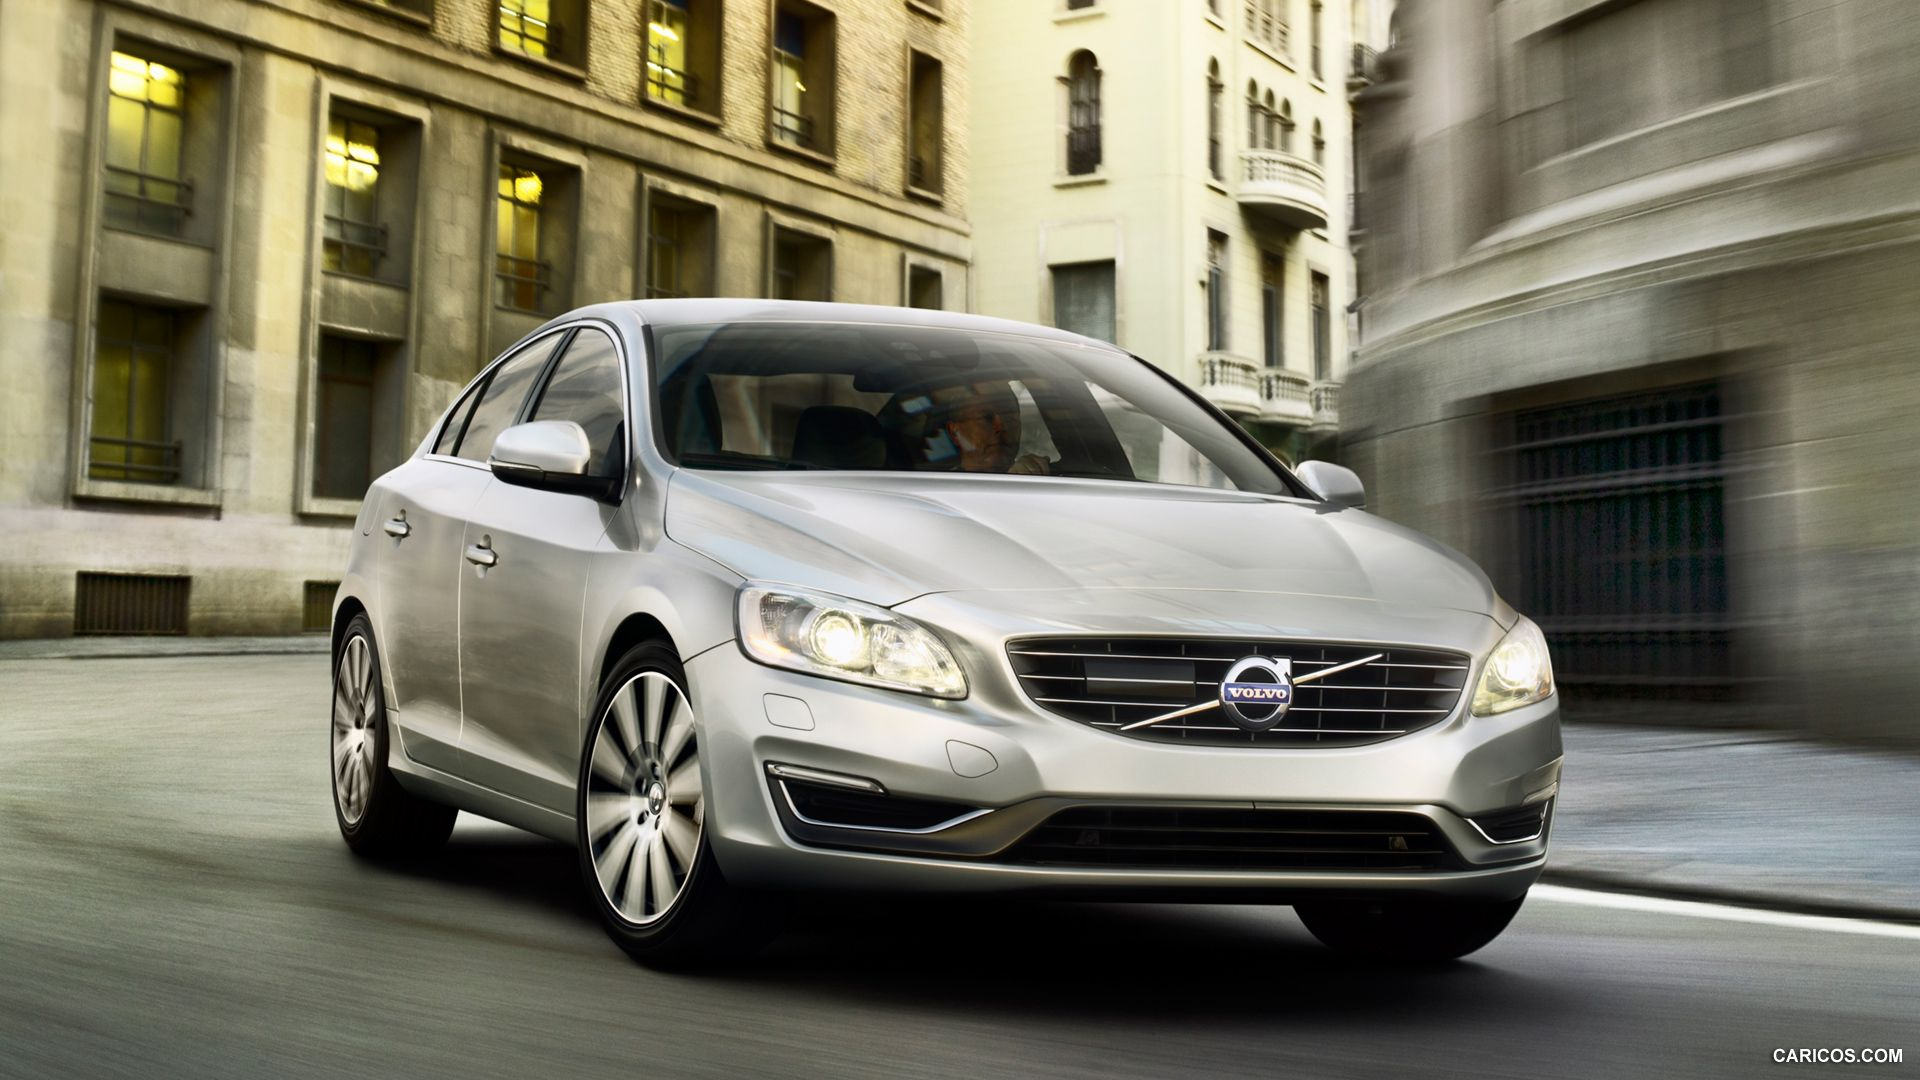 2014 Volvo S60 - Front HD